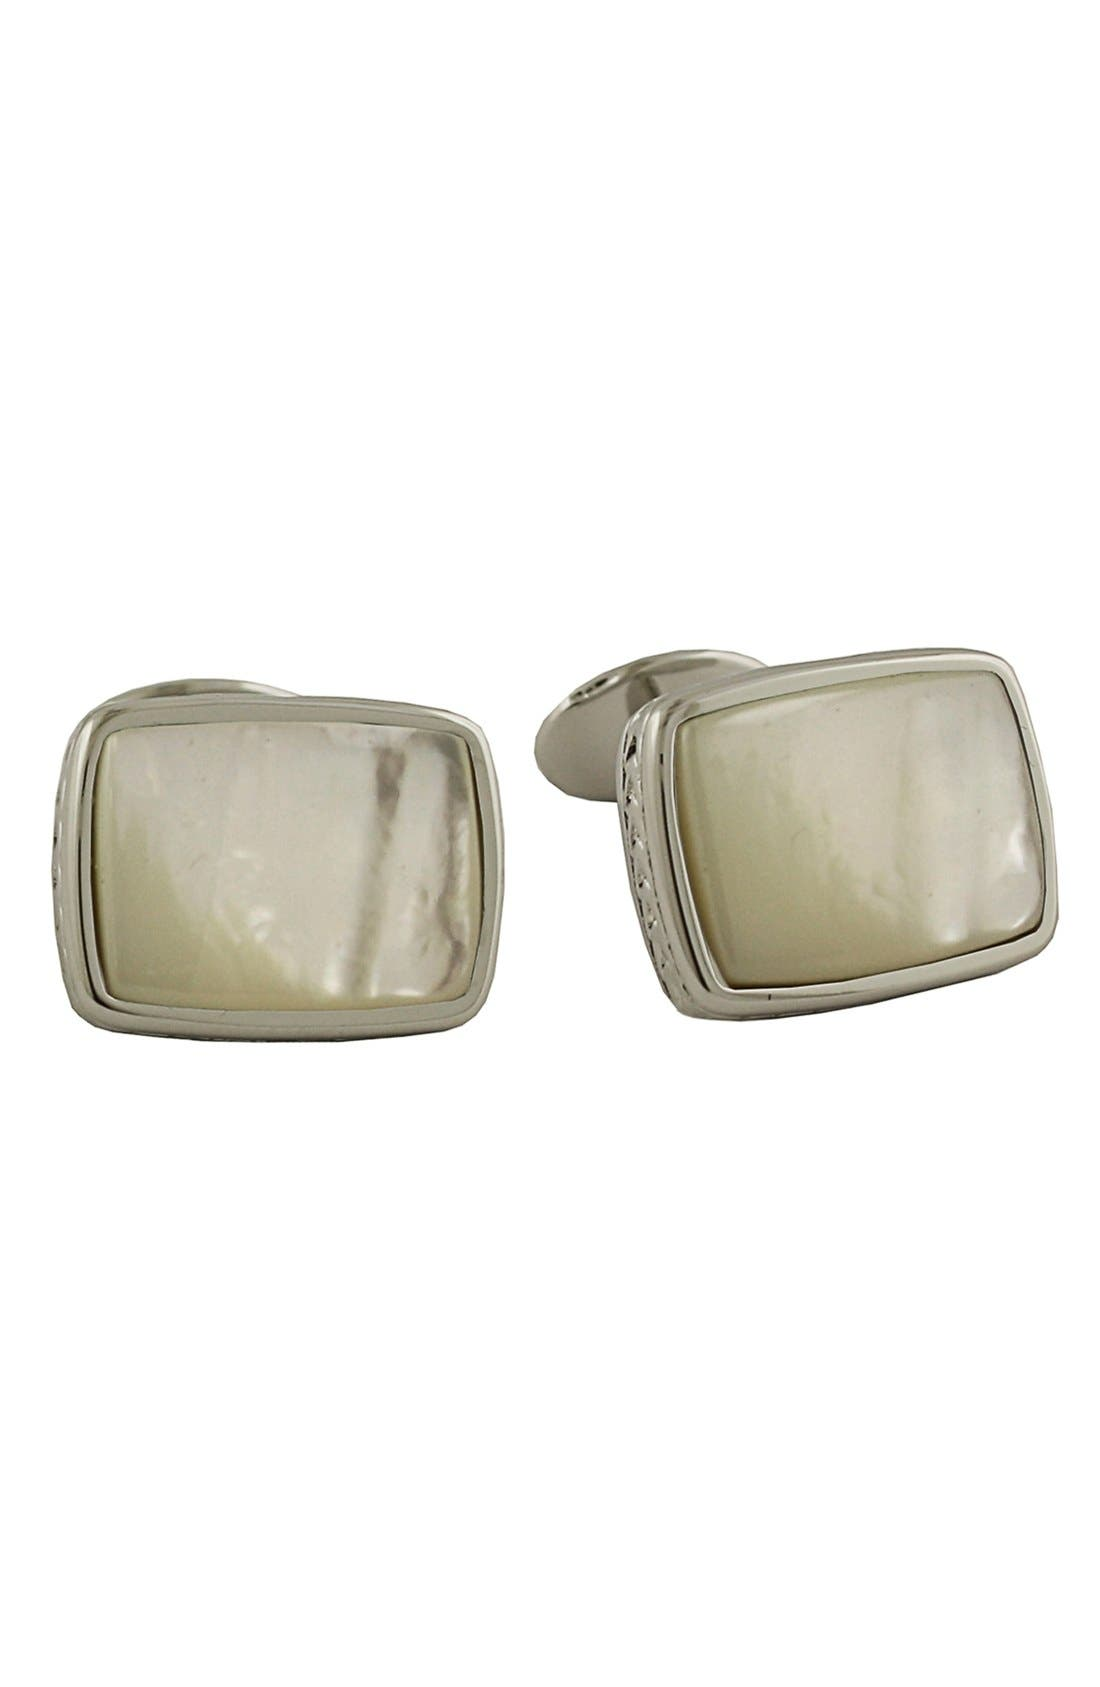 Sterling Silver Cuff Links,                         Main,                         color, 100